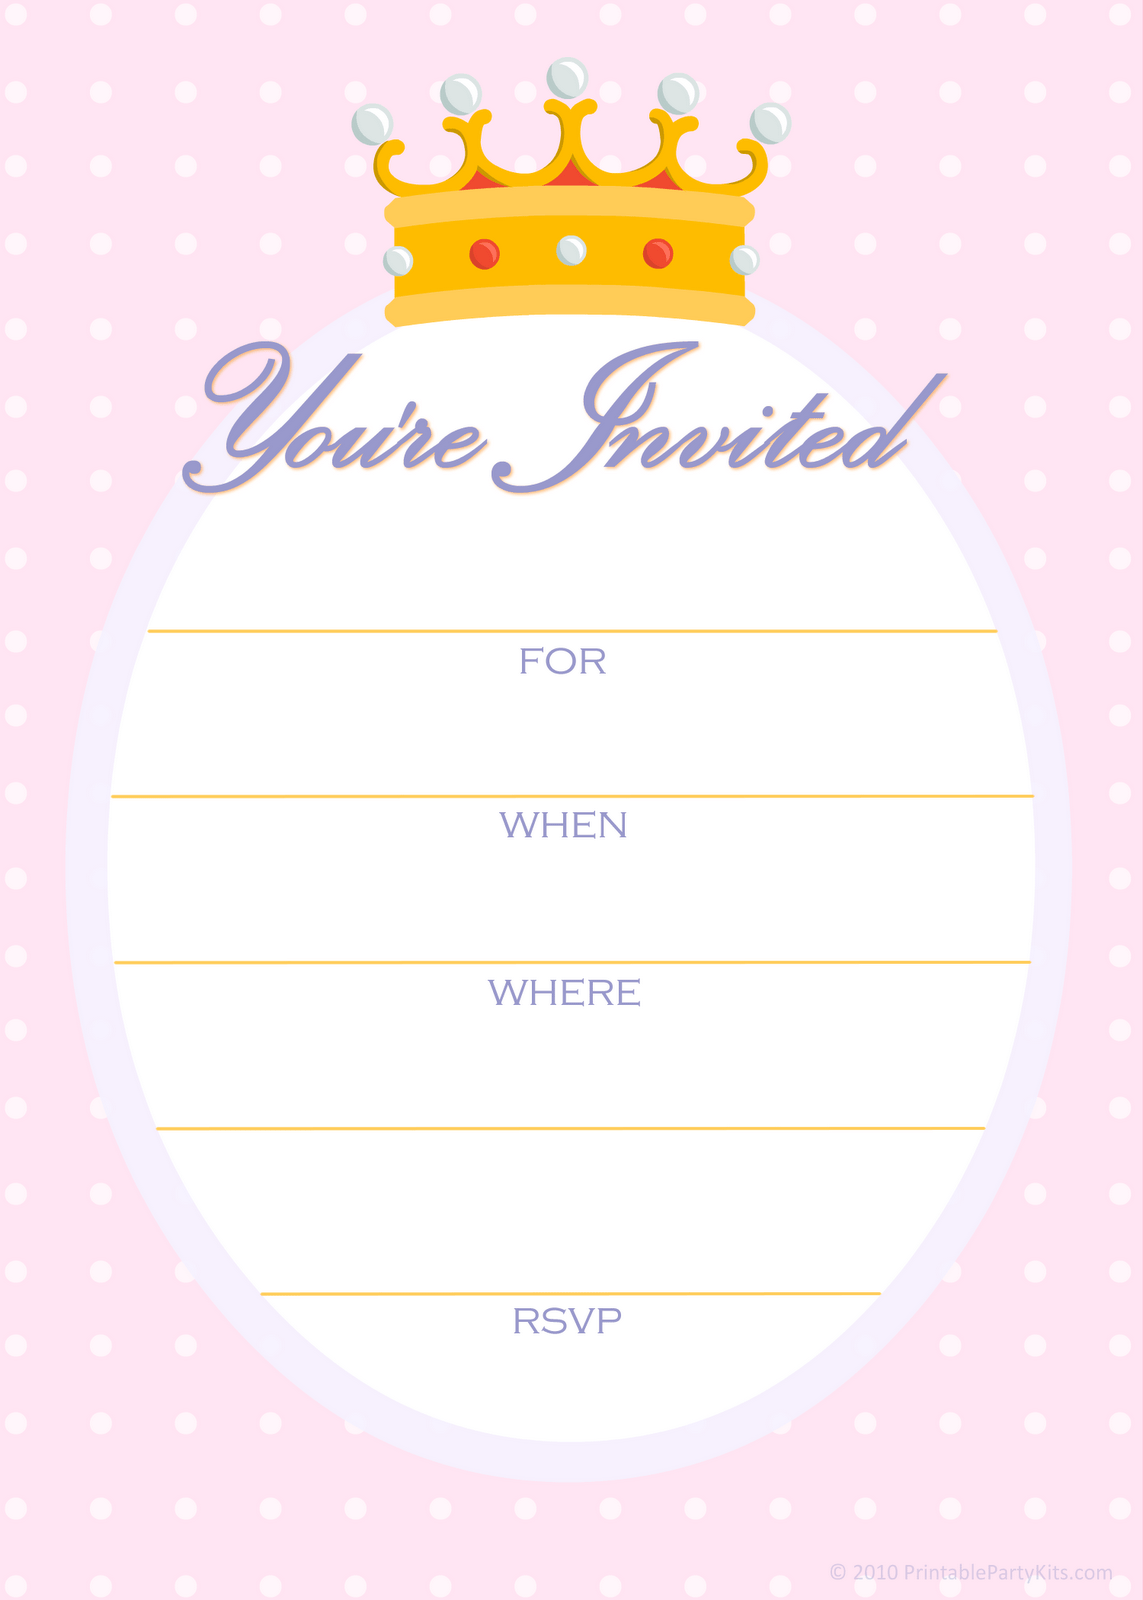 8 Fun Party Templates for Wedding